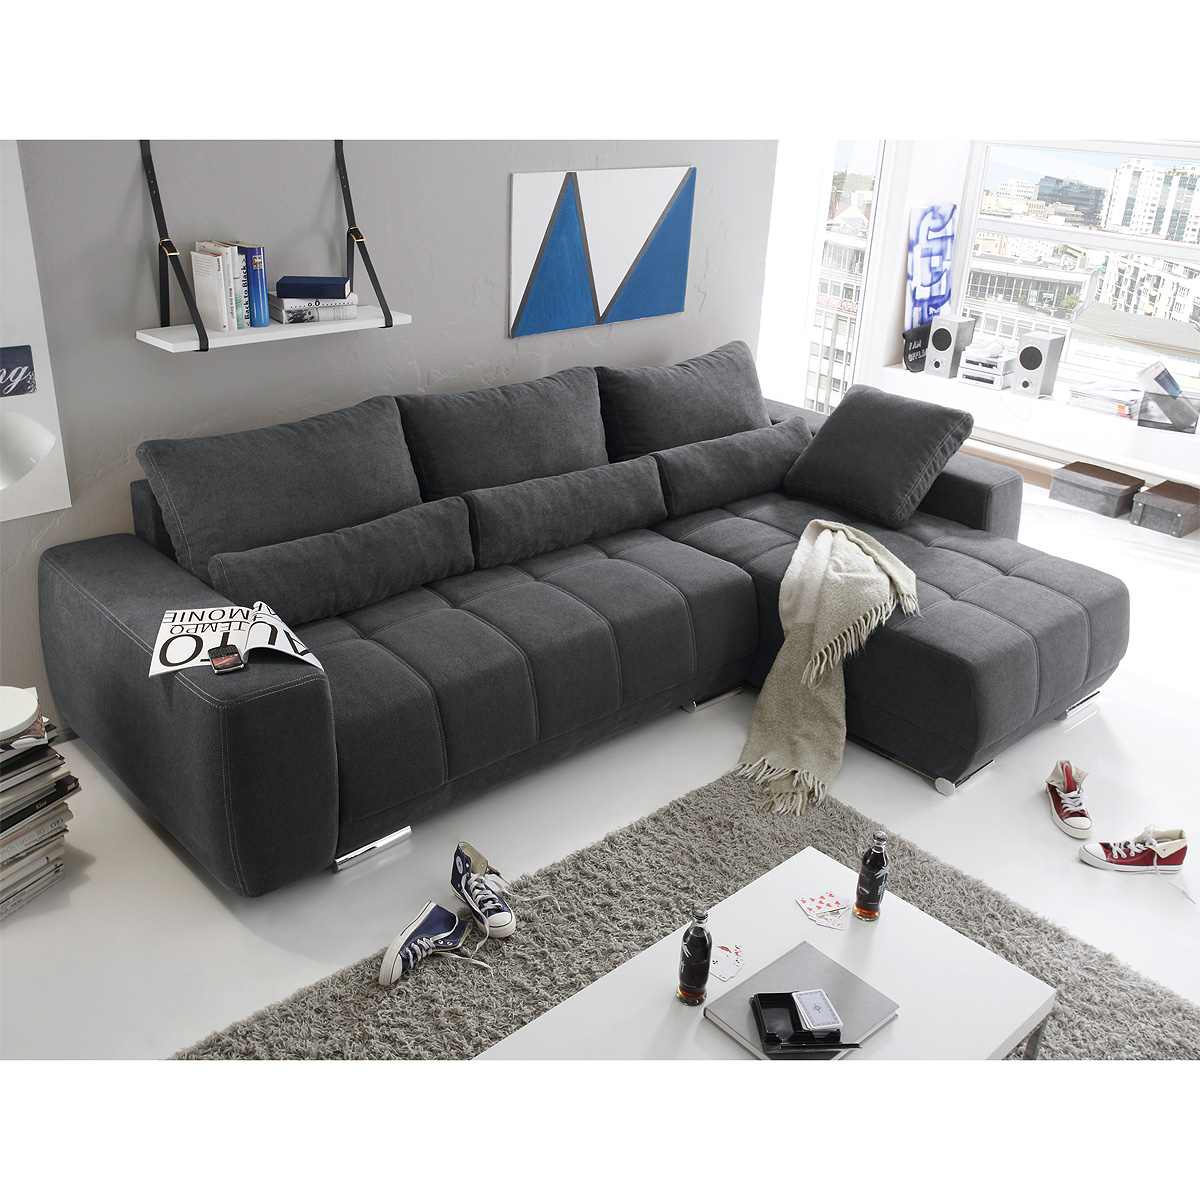 ecksofa lopez sofa wohnlandschaft braun taupe anthrazit hellgrau mit funktion. Black Bedroom Furniture Sets. Home Design Ideas